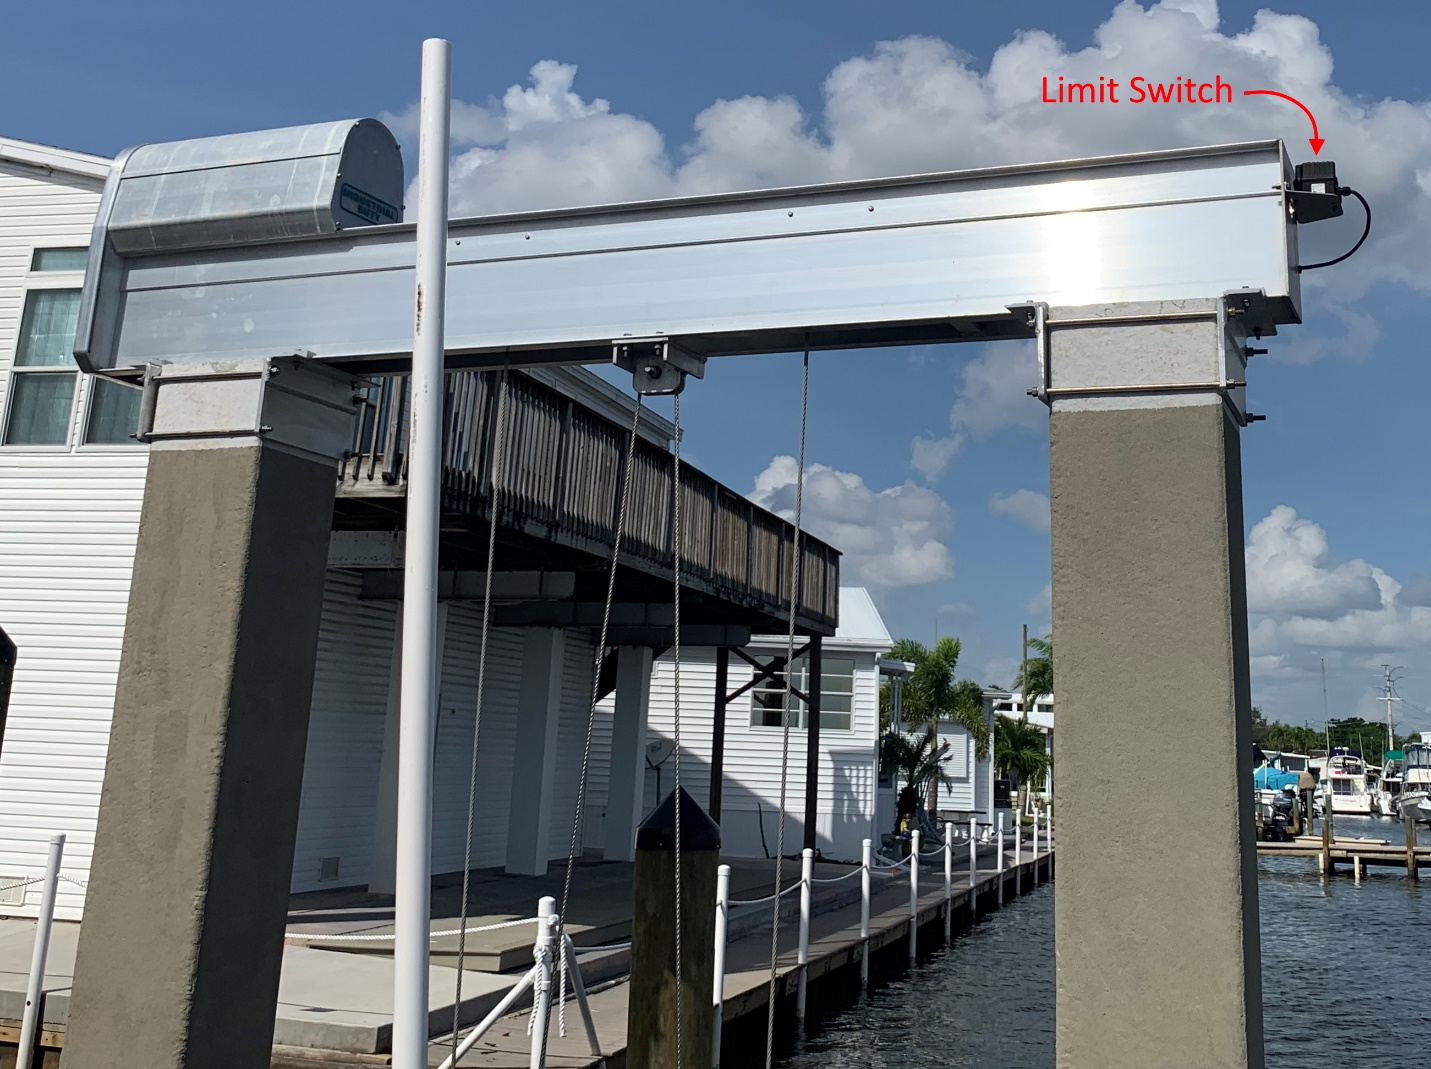 Limit Switch IMM Quality Boat Lifts